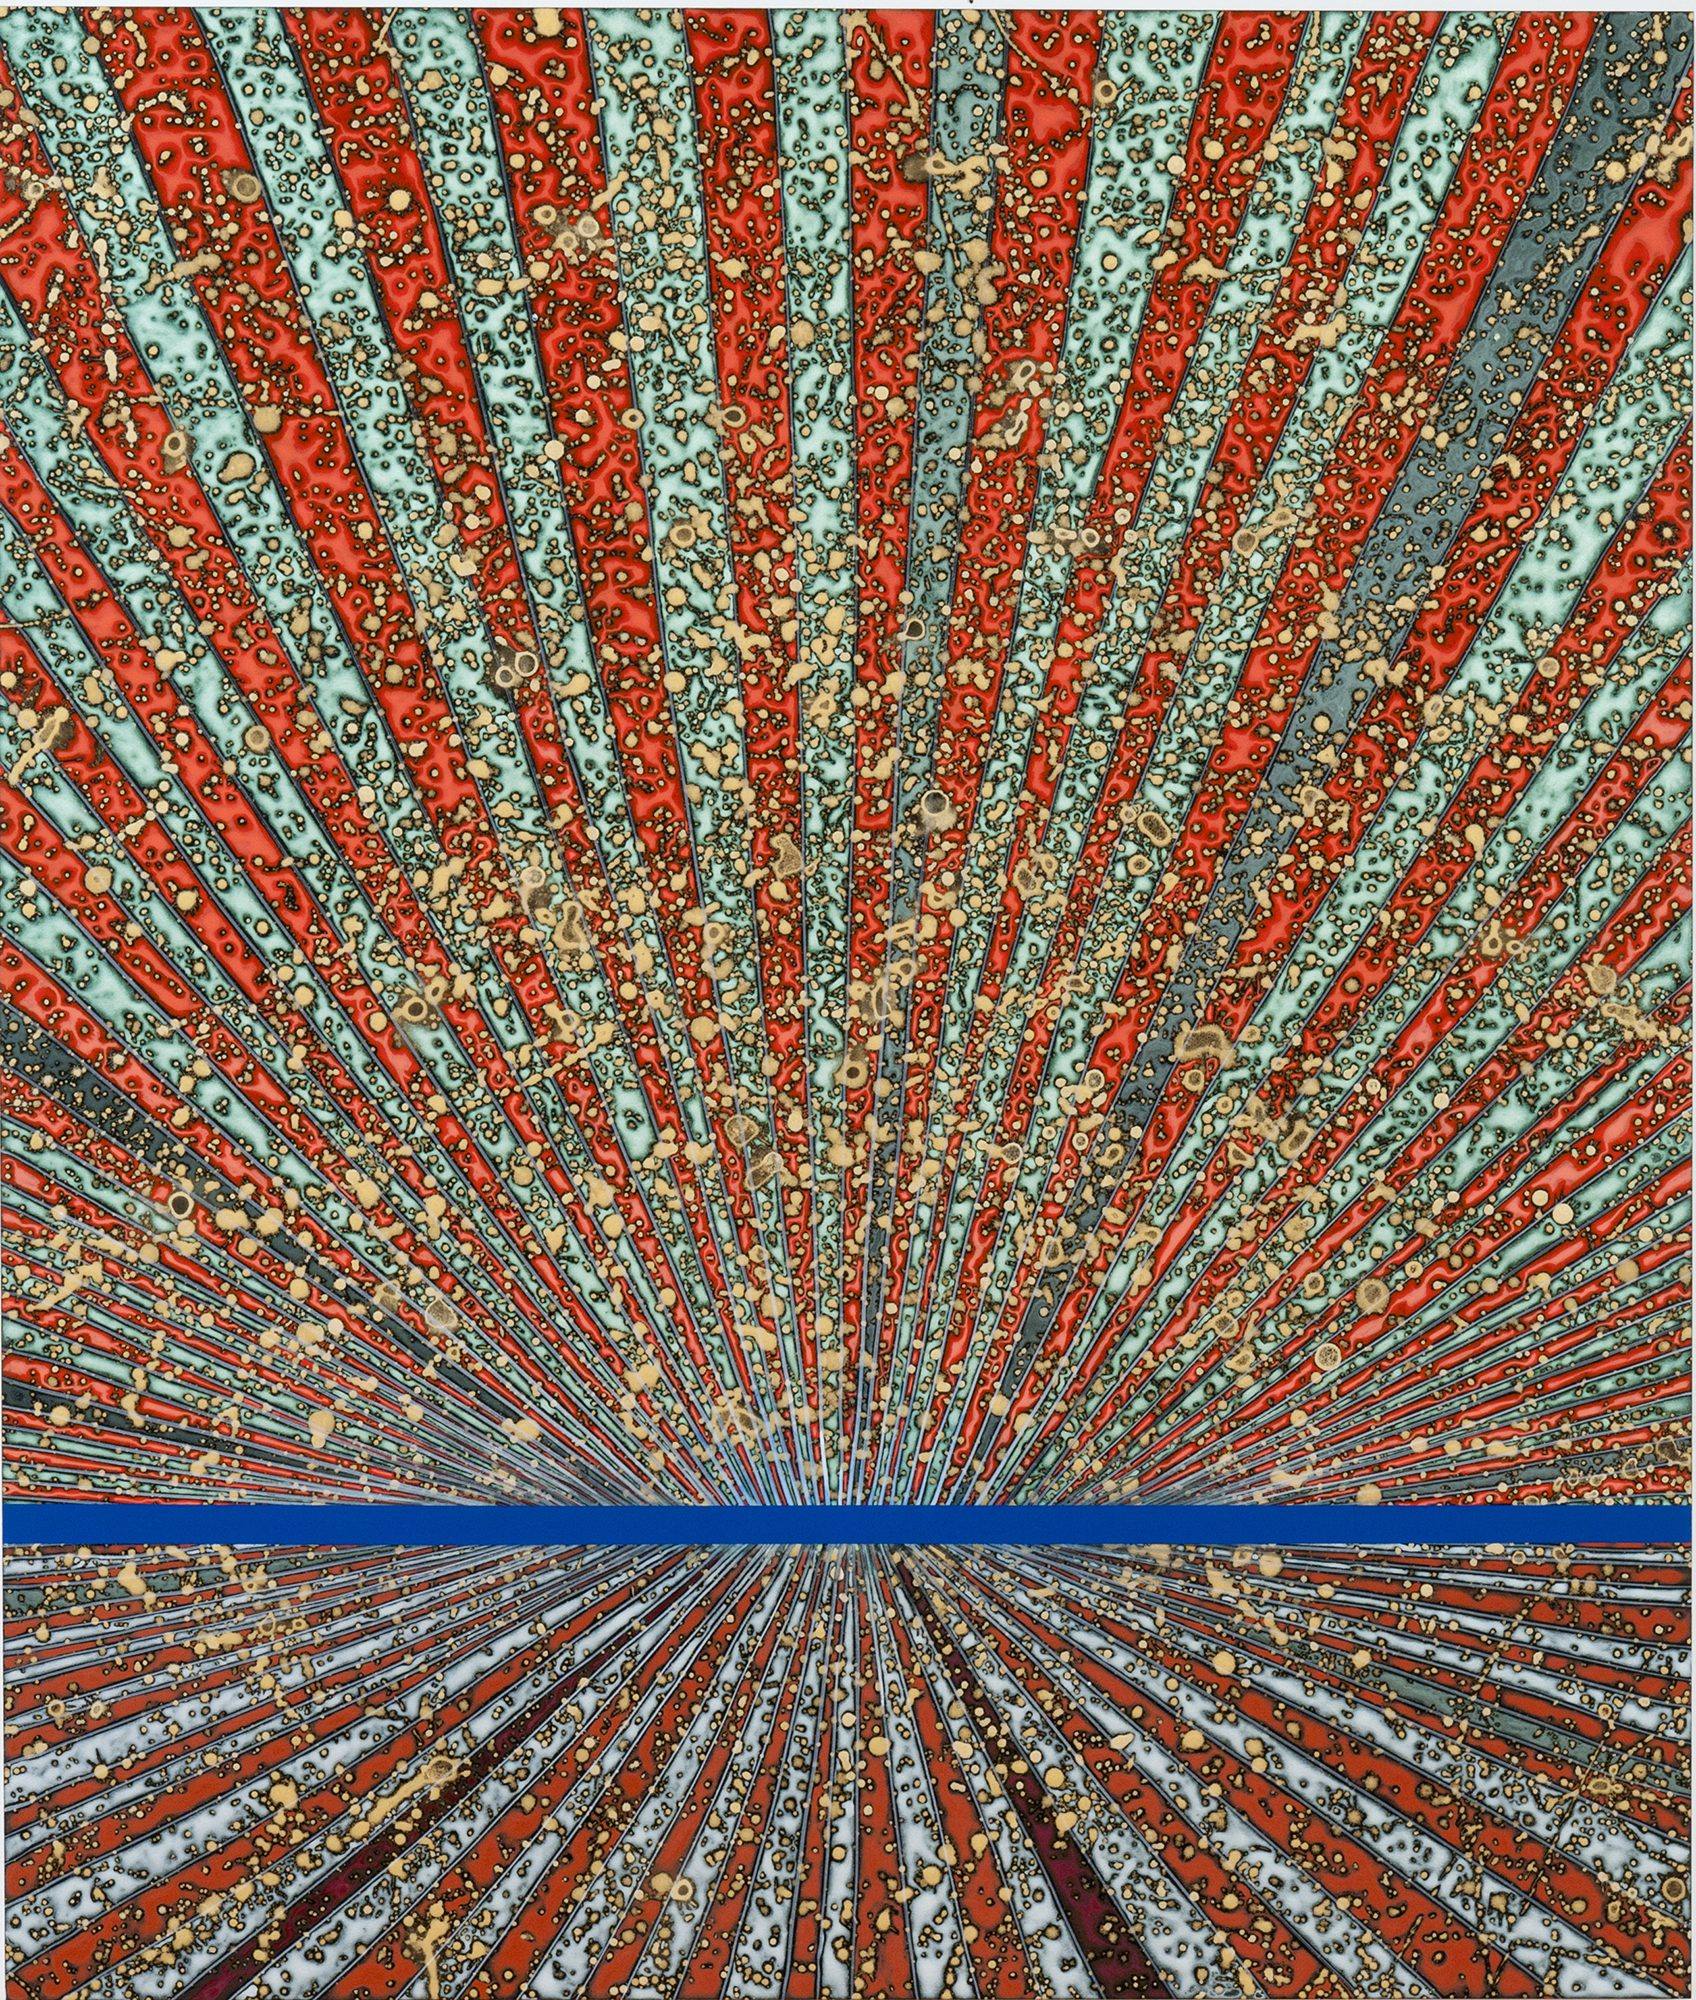 Barbara Takenaga (American, b. 1949) Tadanori (blue line), 2010. Acrylic on wood panel, 42 x 36 in. Courtesy of DC Moore Gallery, New York